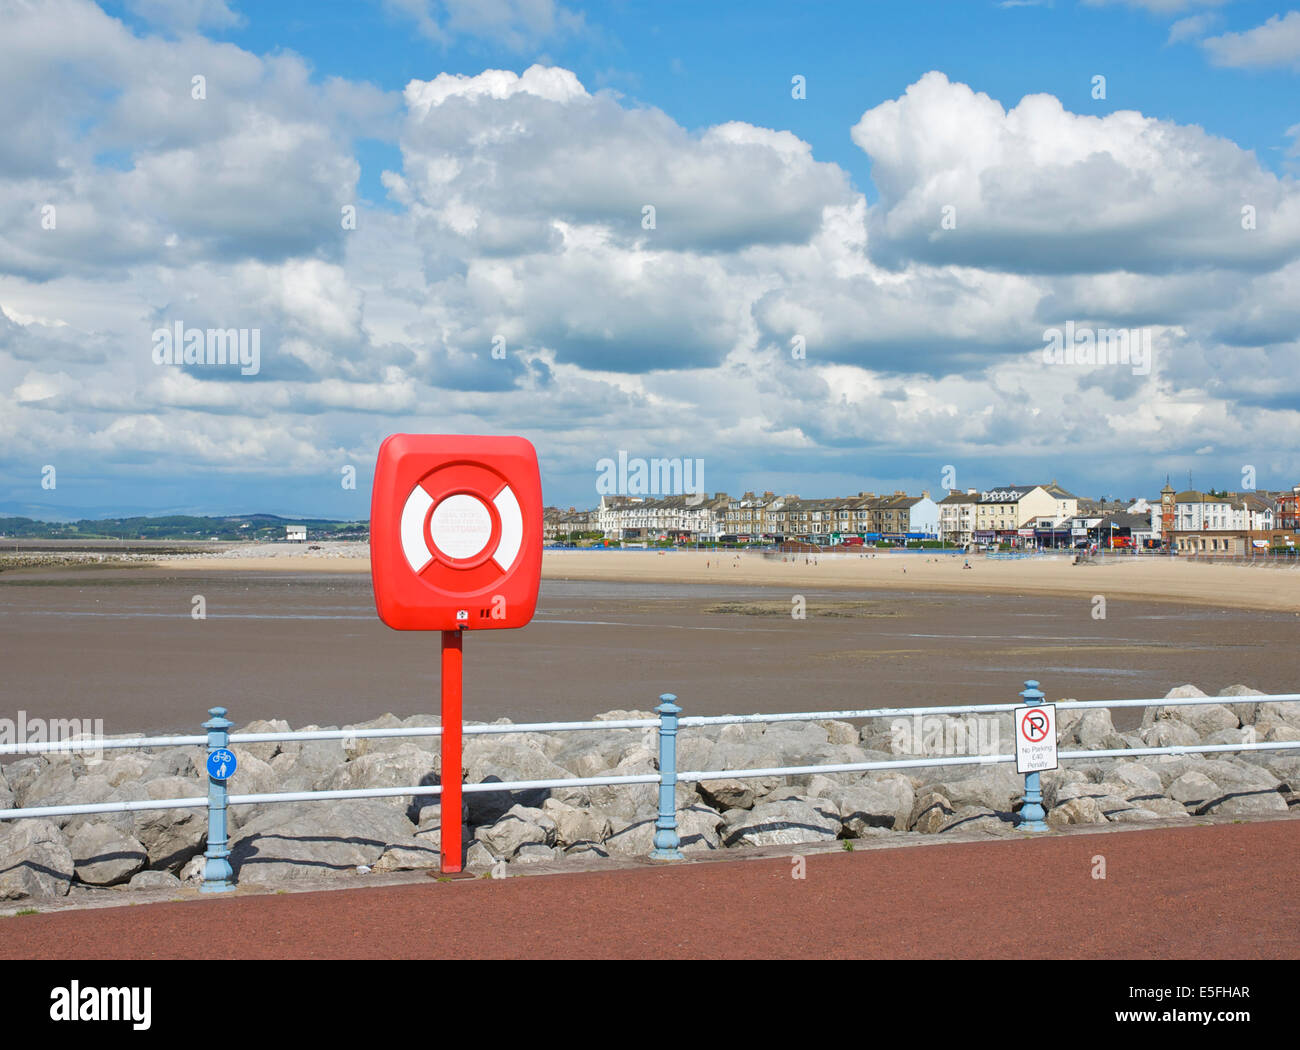 Lifebelt on the Stone Jetty, Morecambe, Lancashire, England UK - Stock Image